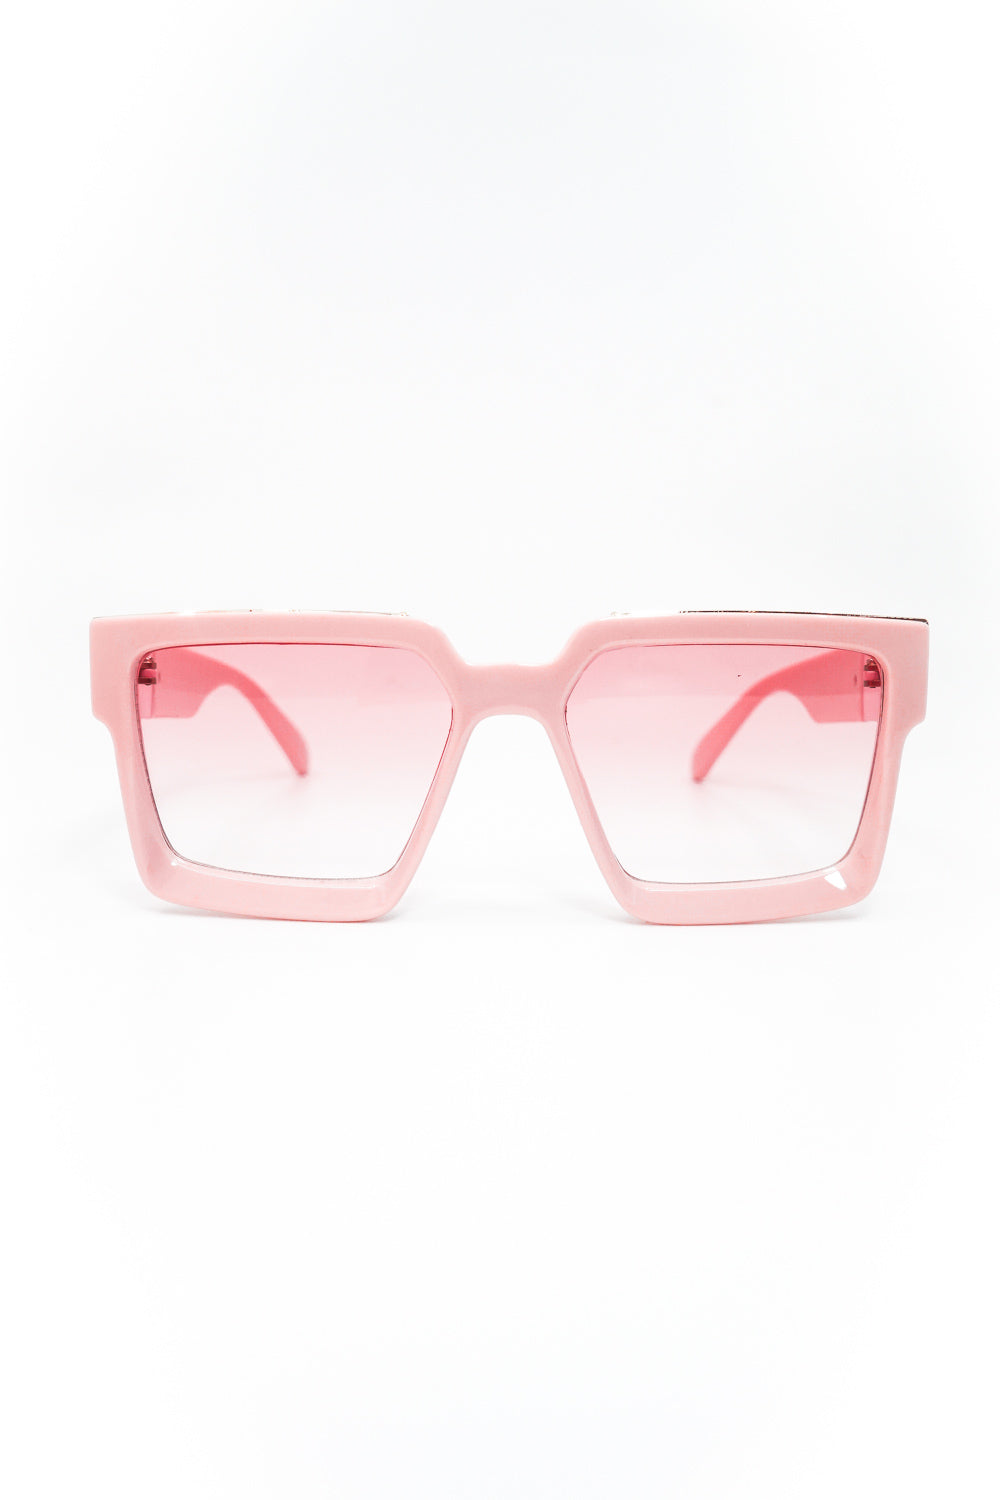 Seasons Hottest Thickened Square Frame Sunglasses in Pink - Fashion House USA